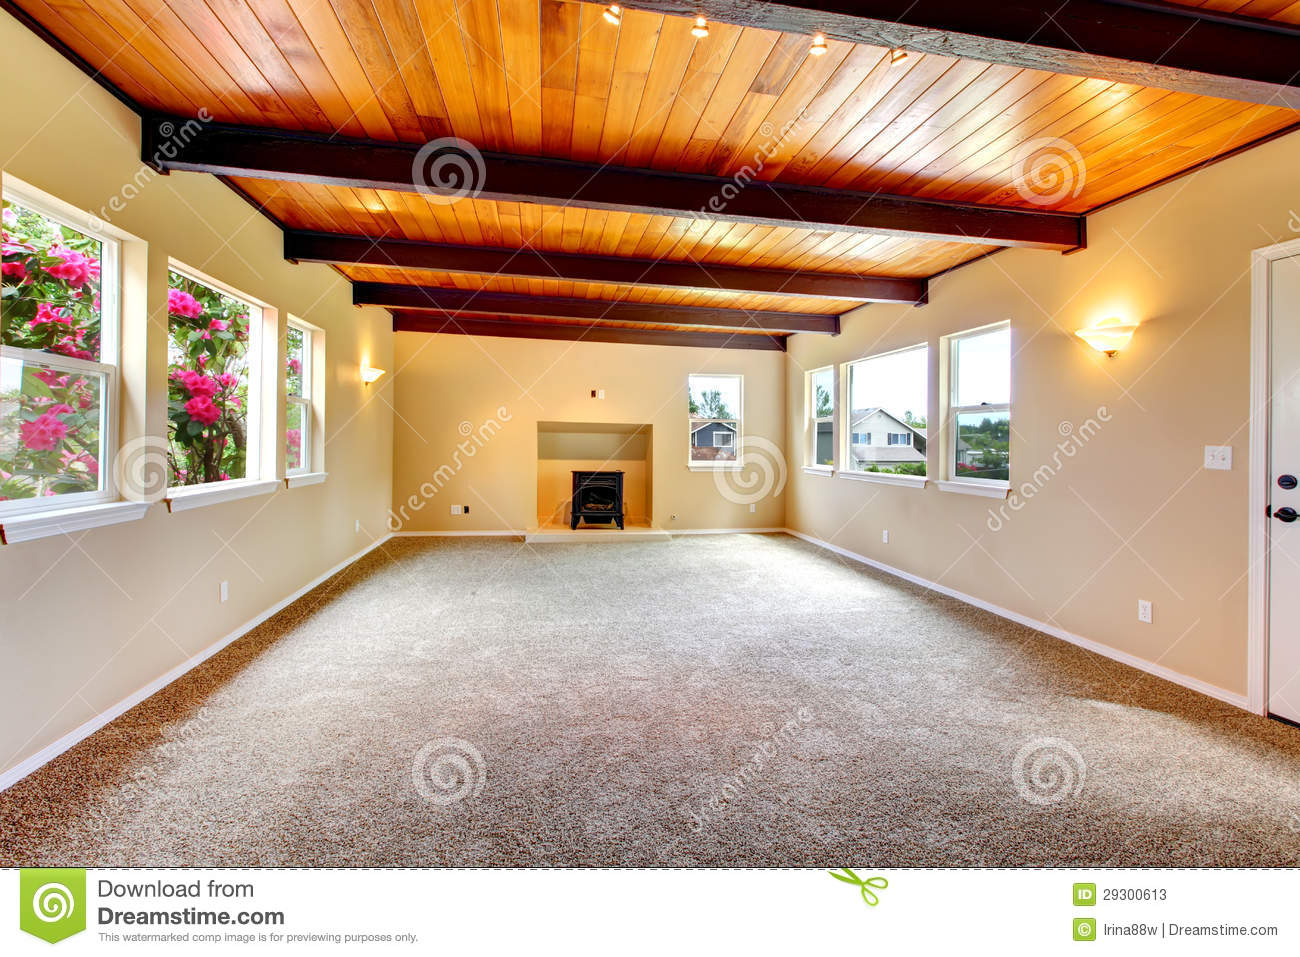 Grand Fireplace W Vaulted Ceilings Beams Open Floor: New Large Empty Living Room With Wood Ceiling And